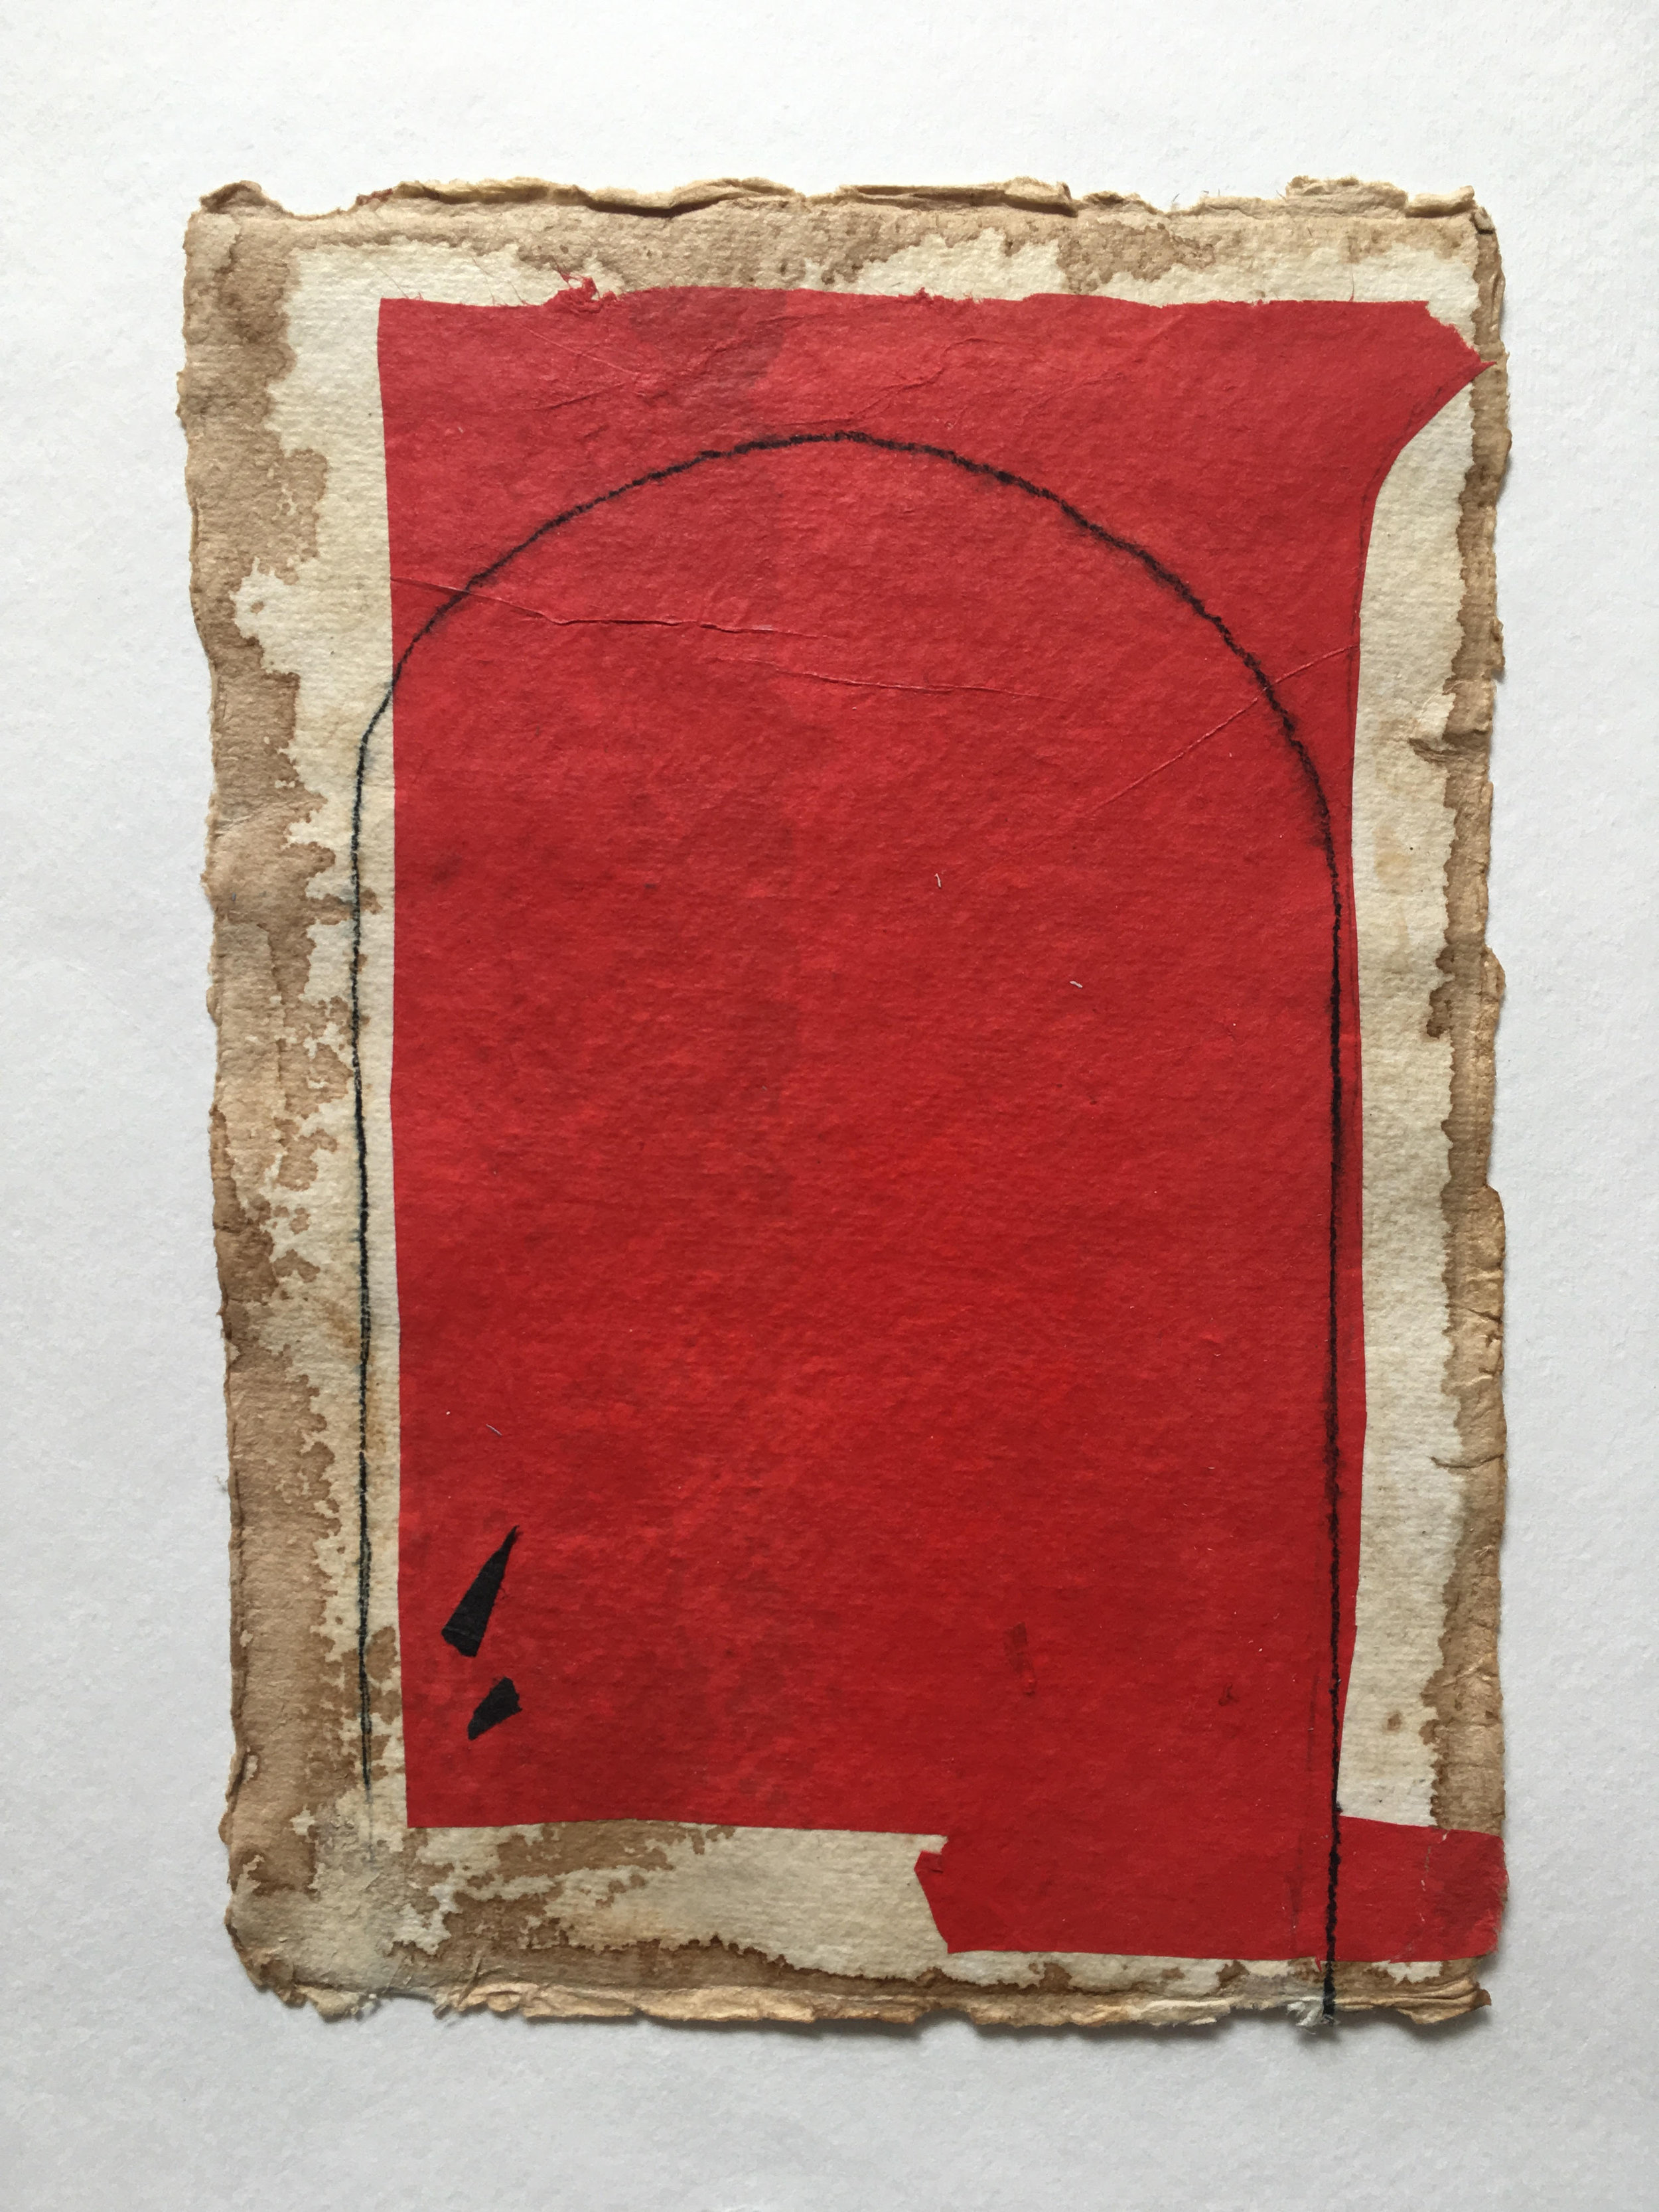 Red Form on Tan with Curved Line, 2018, mixed media on coffee-dyed watercolor paper,  8.25 x 6.25 in, $250